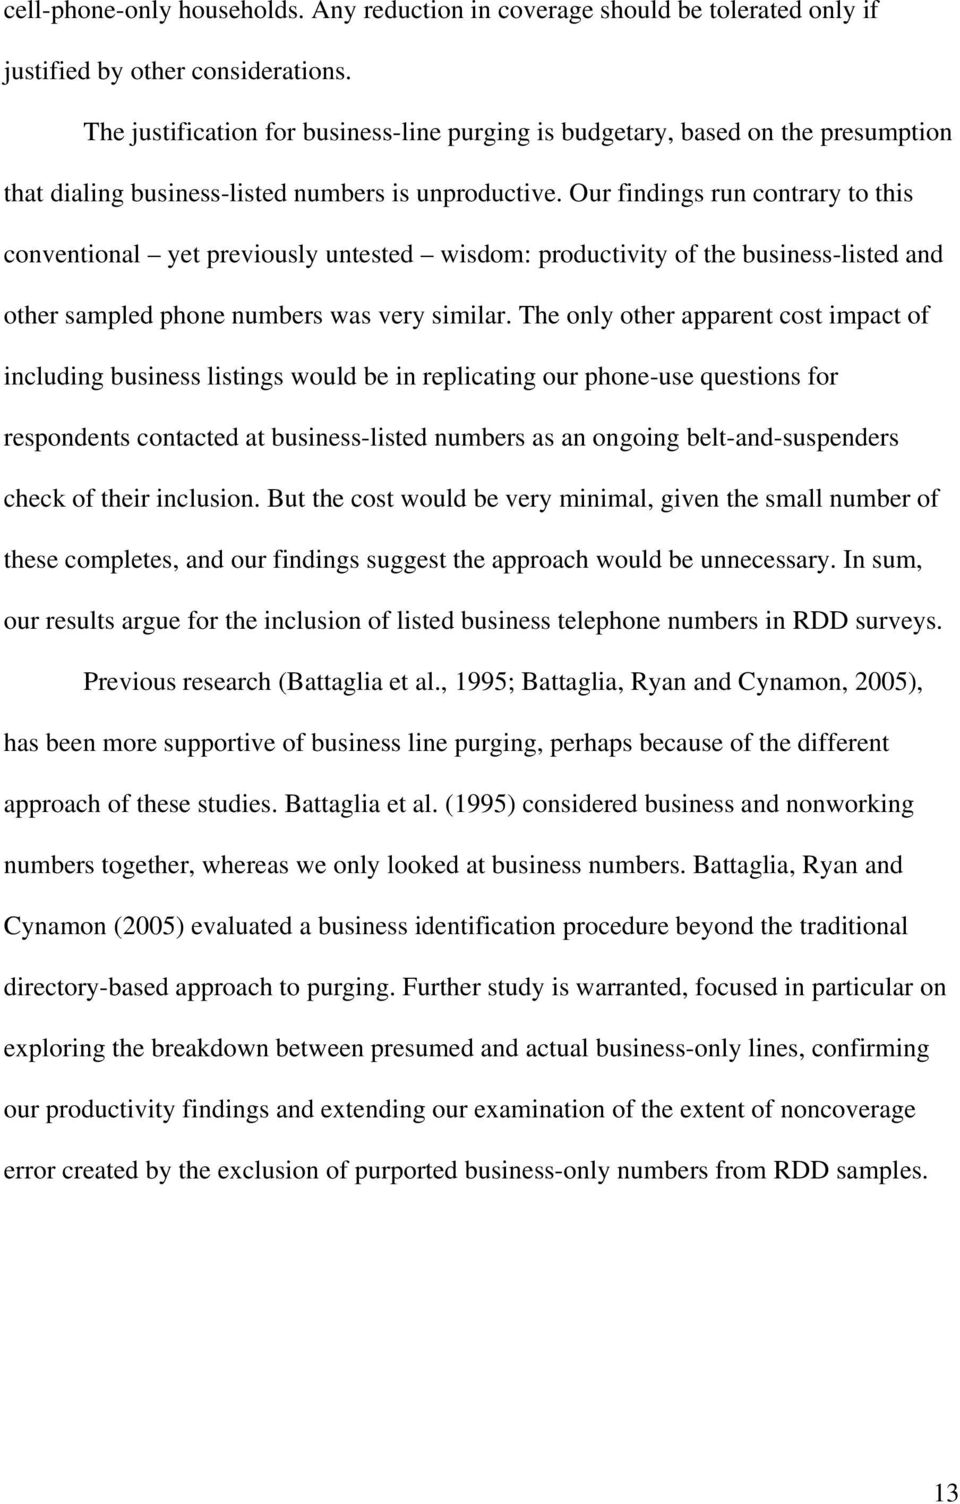 Our findings run contrary to this conventional yet previously untested wisdom: productivity of the business-listed and other sampled phone numbers was very similar.